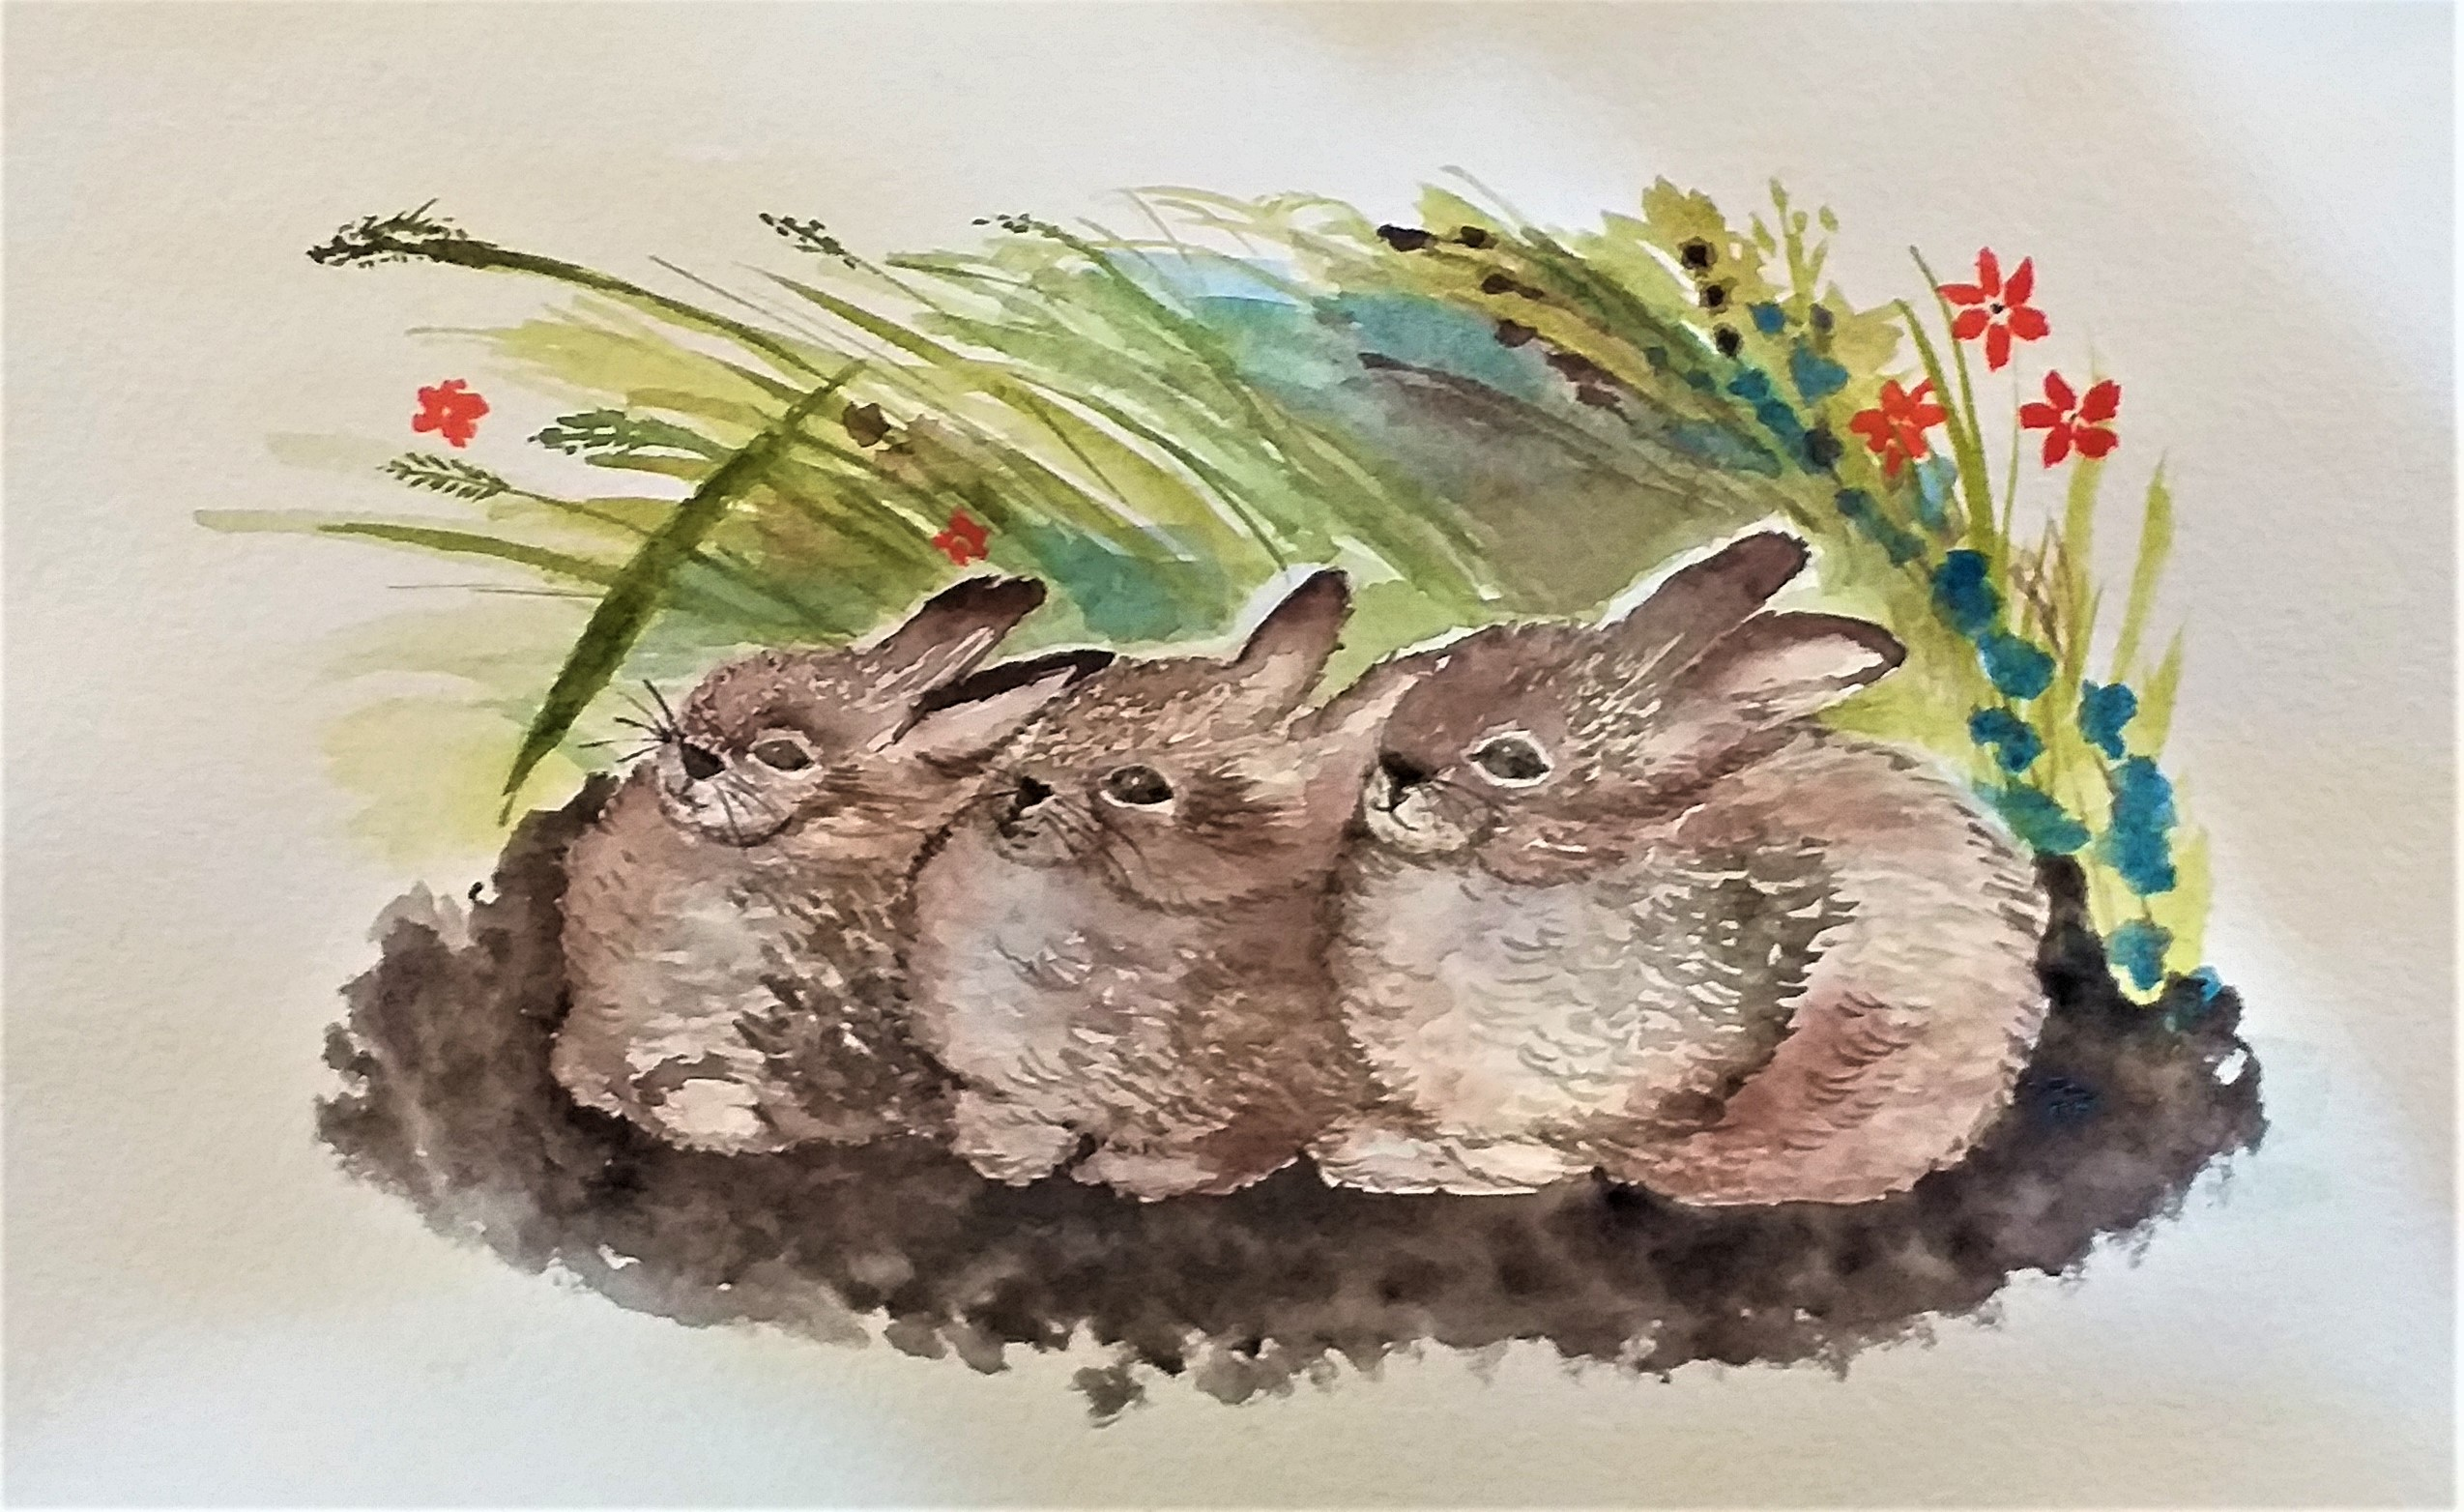 Learn to paint animals in watercolour with Raya Brown at her Watercolour art classes in Worcestershire